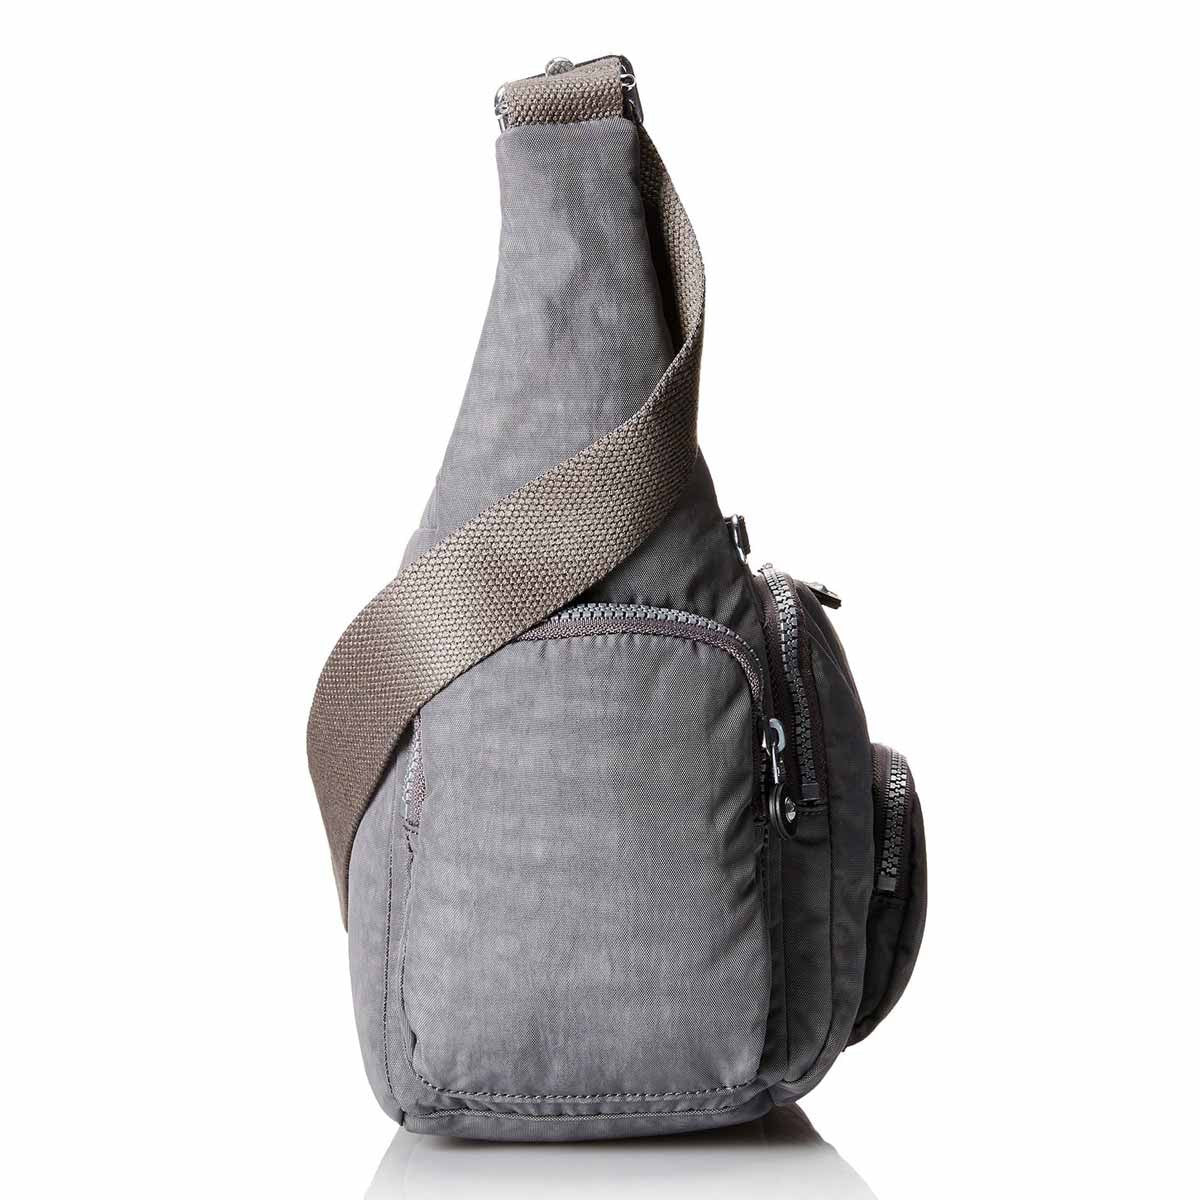 Kipling HB3122-021 Women's Erica Dusty Grey Nylon Crossbody Shoulder Bag